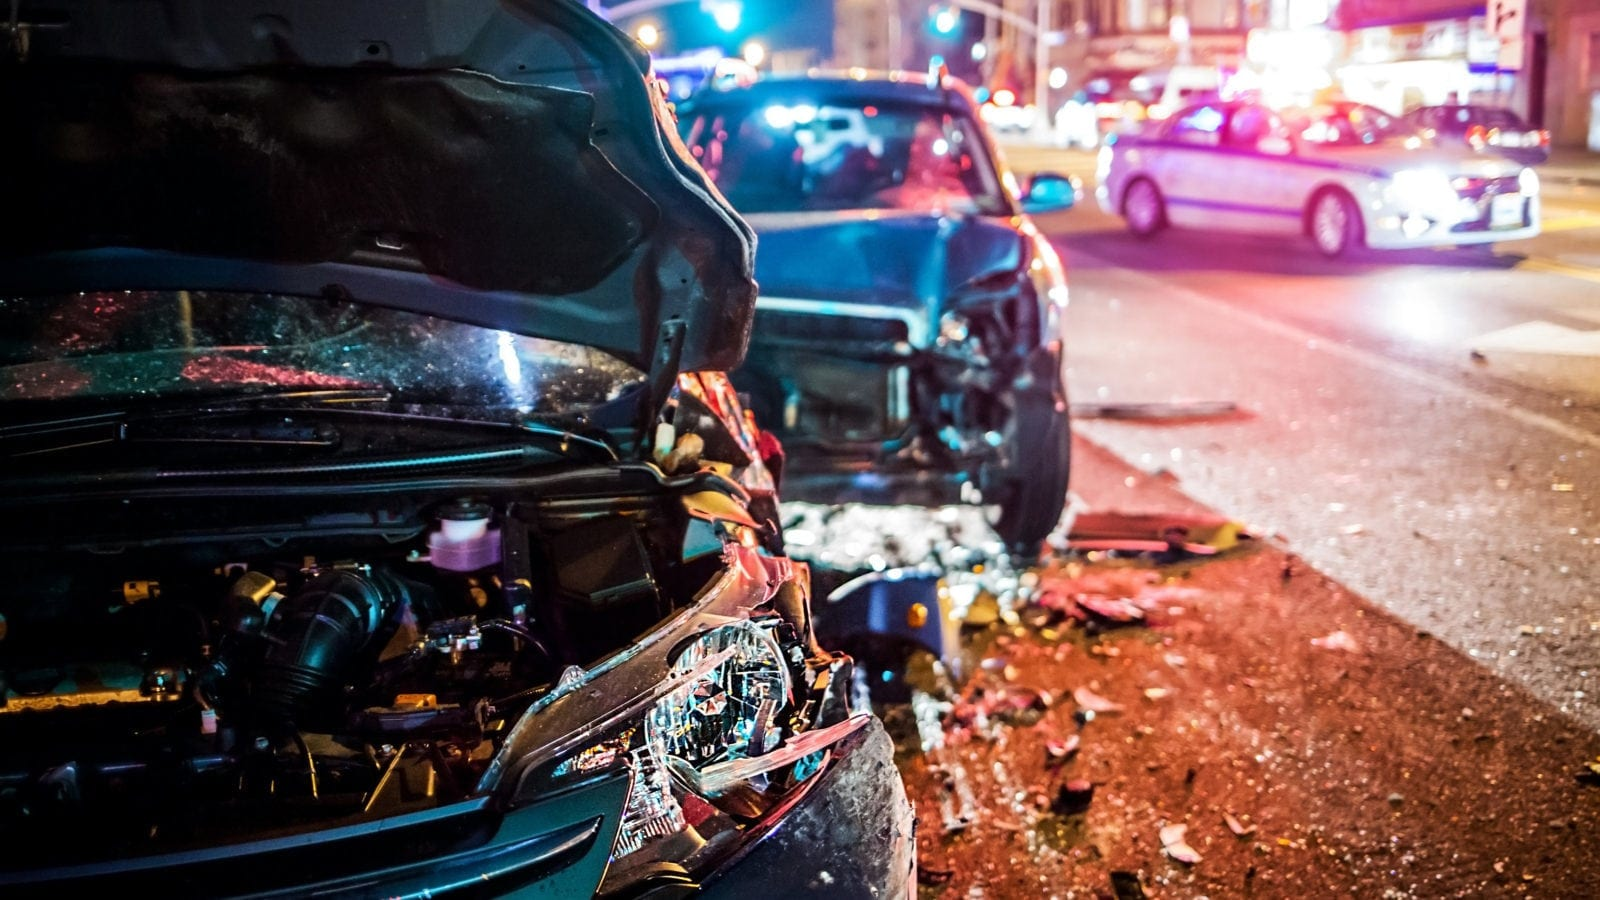 Severe Car Accident At Night Stock Photo